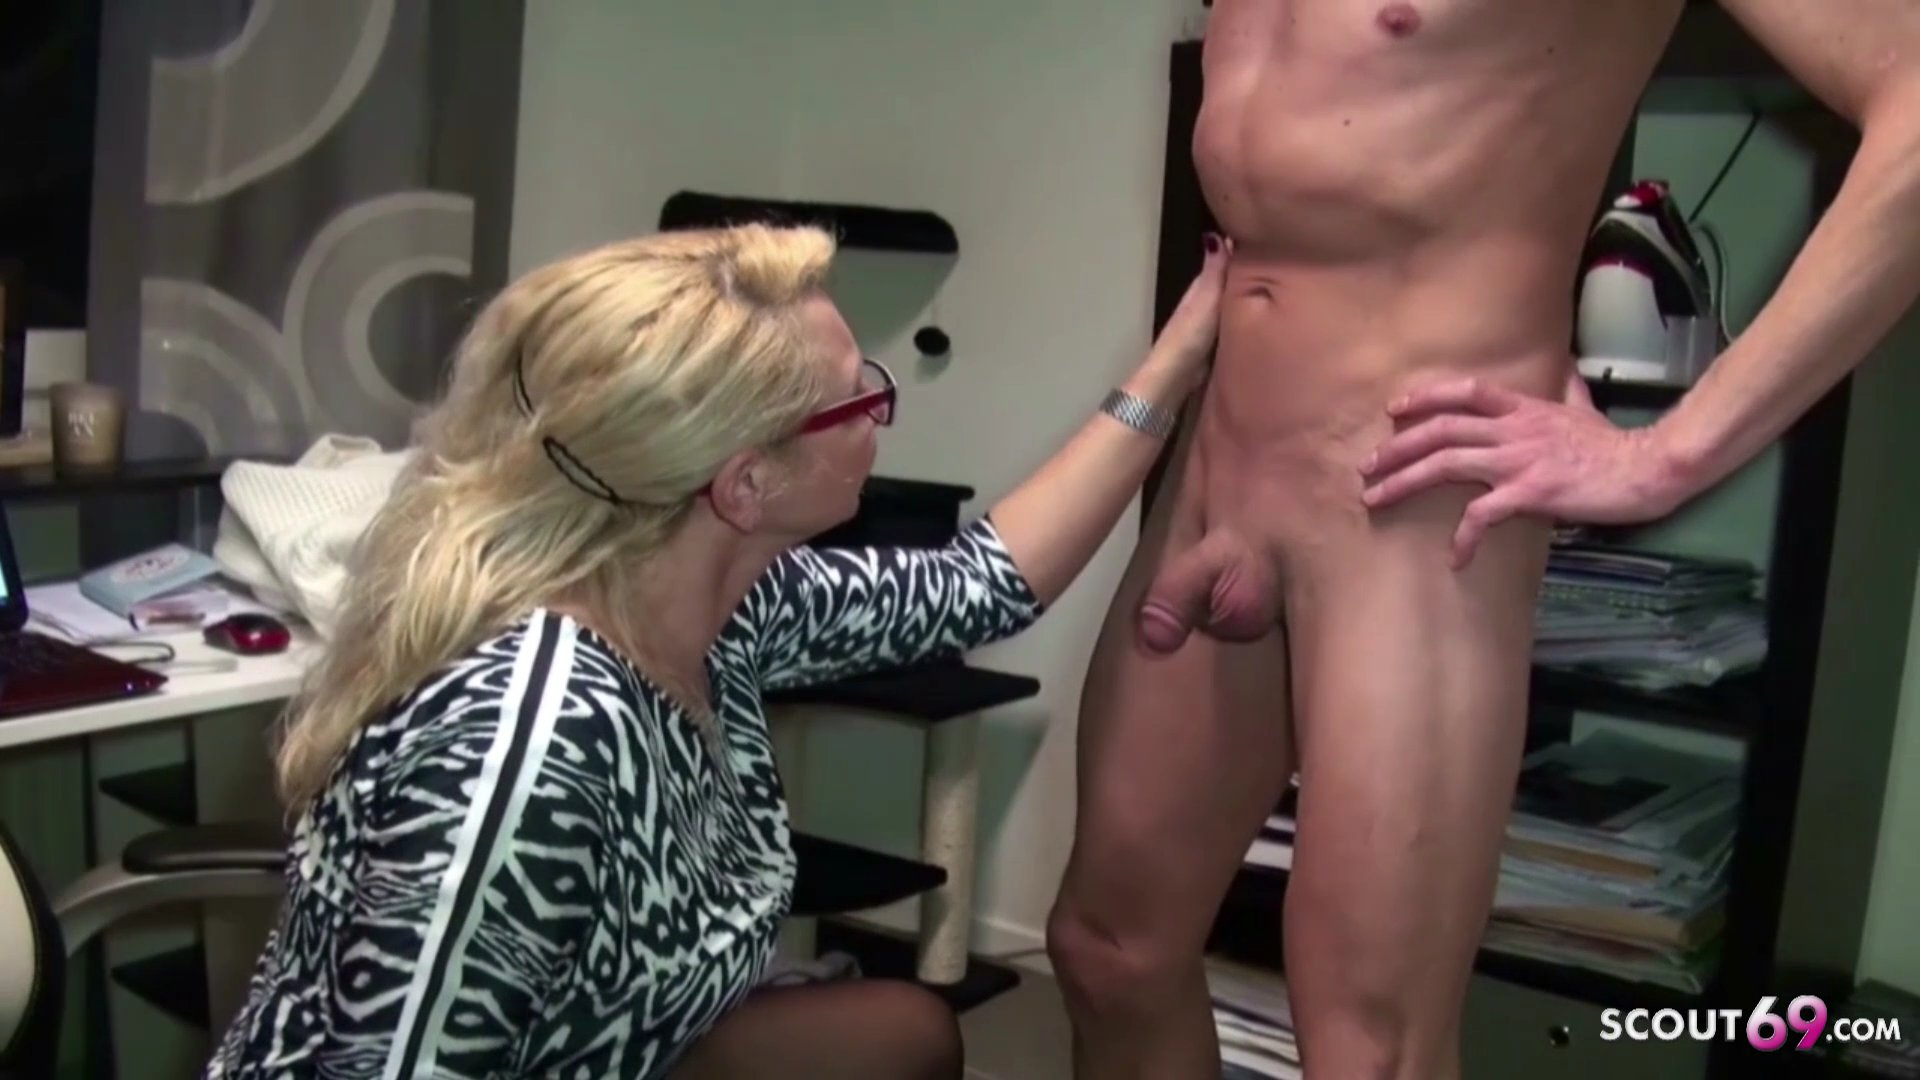 Längste Videos nach Tag: free milf porno